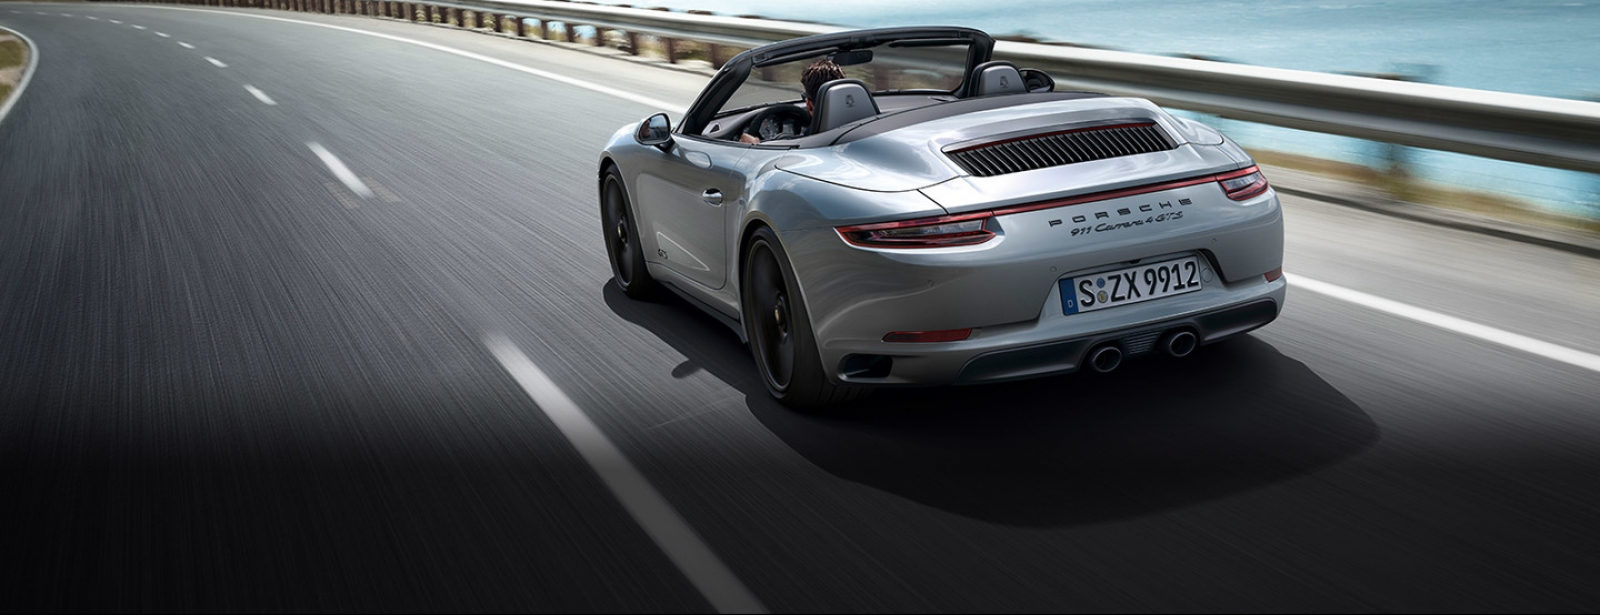 Porsche - 911 Carrera 4 GTS Cabriolet - Driven for more.